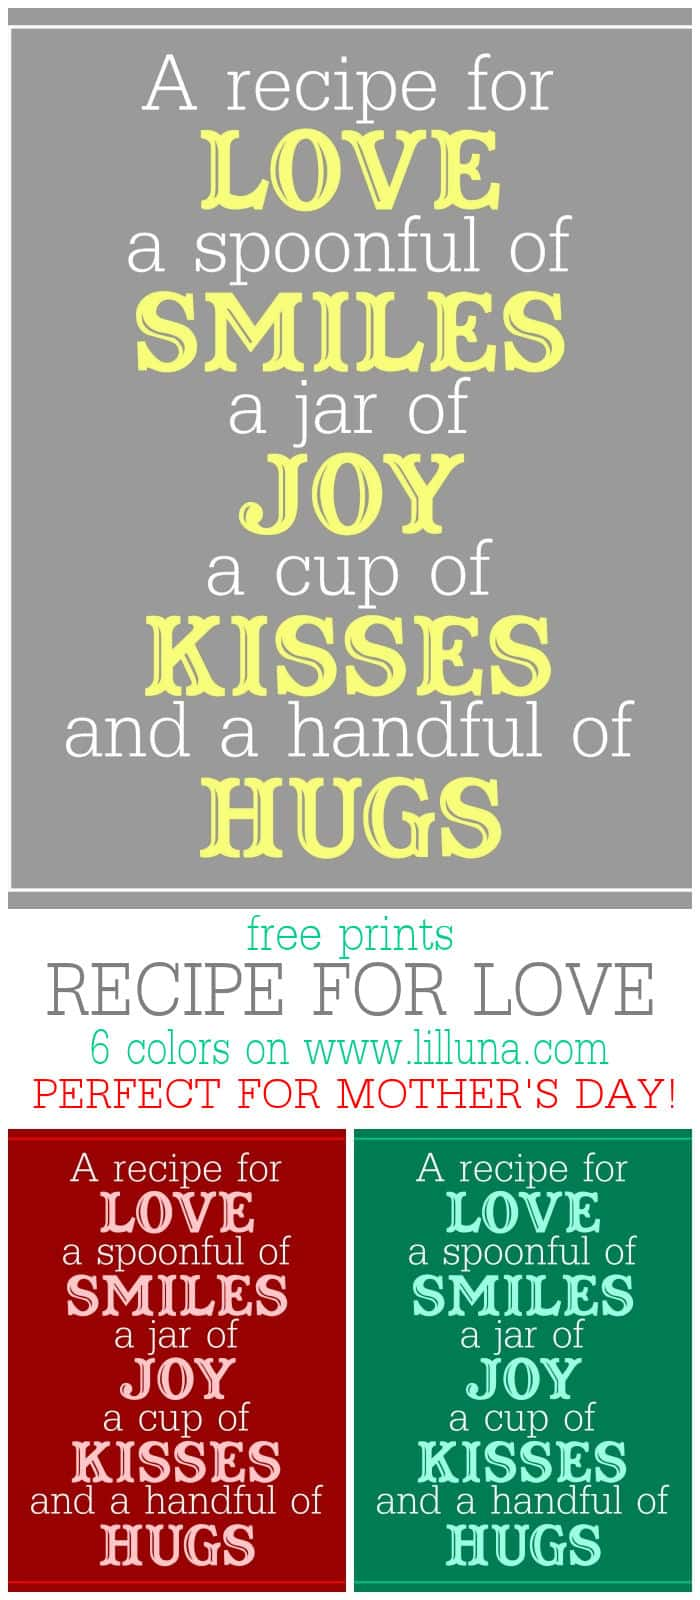 Recipe for Love Mother's Day Print - 6 FREE color prints on { lilluna.com }